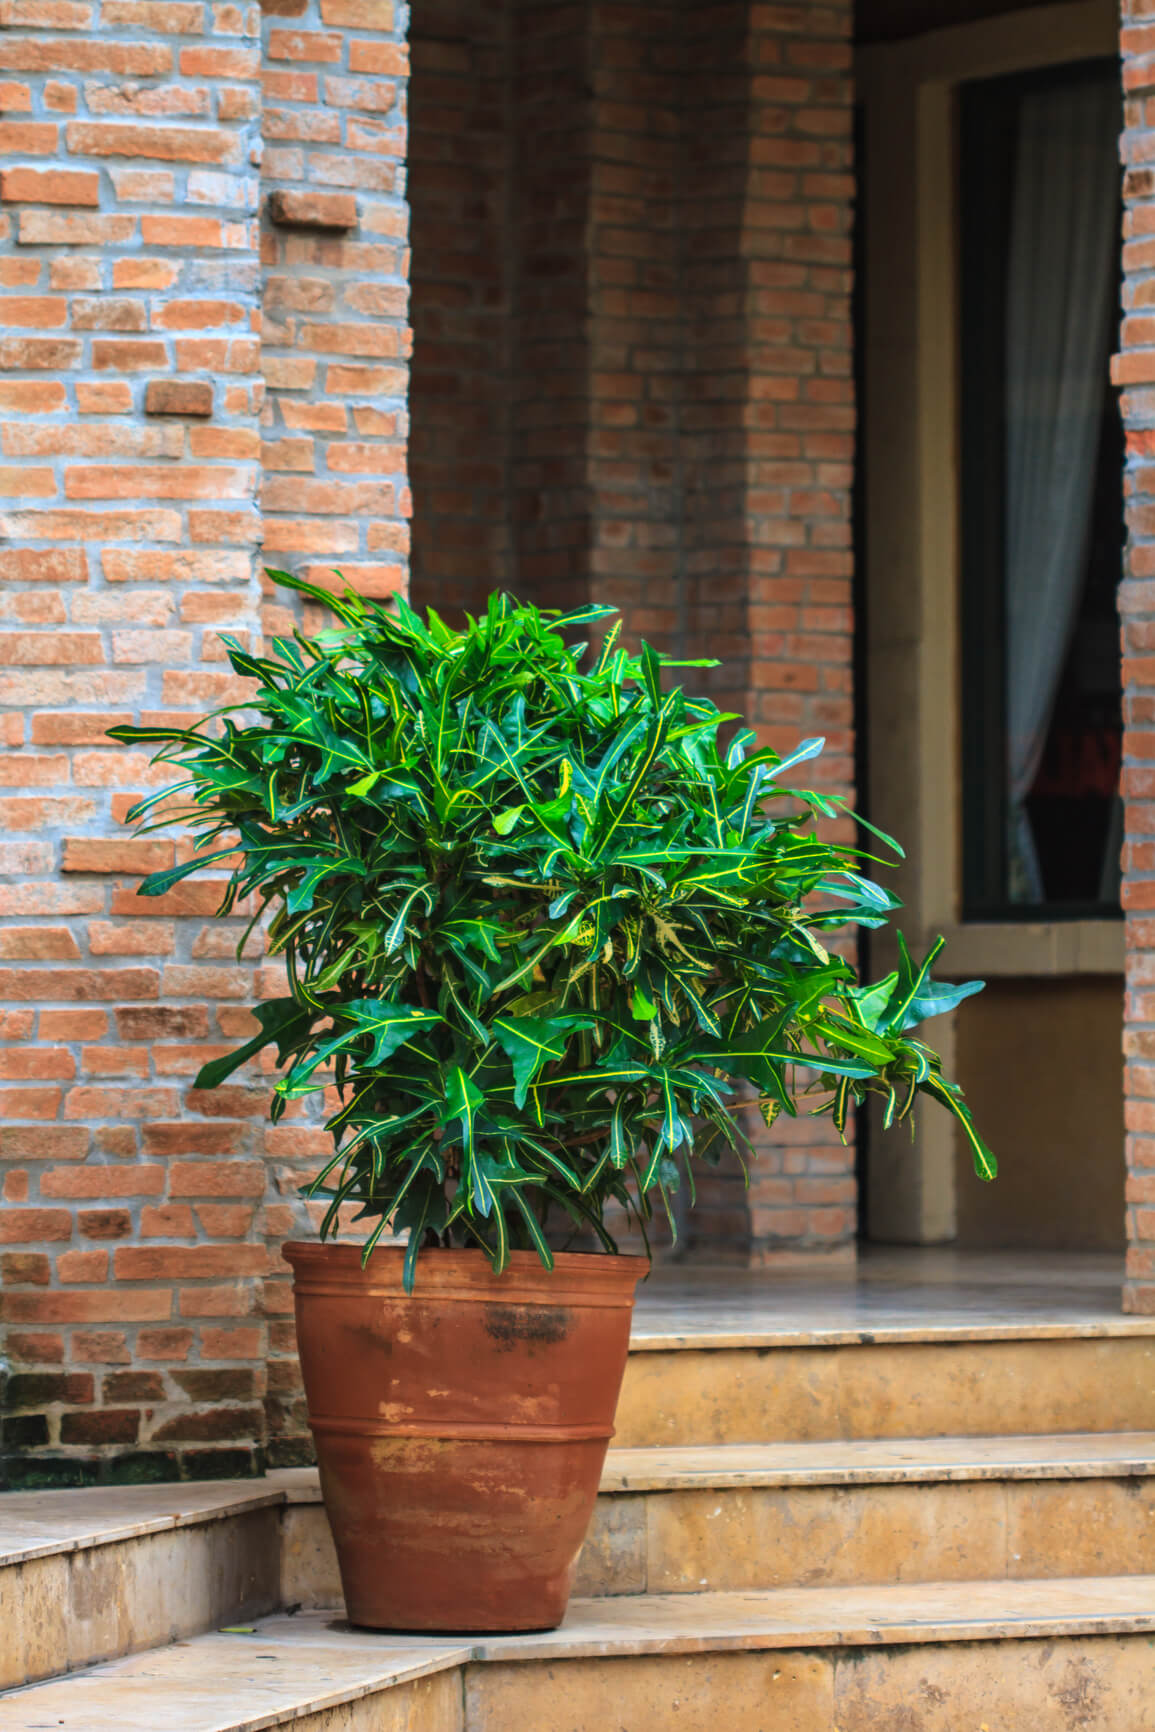 Budget-Friendly Curb Appeal Ideas: Add potted plants near the front door